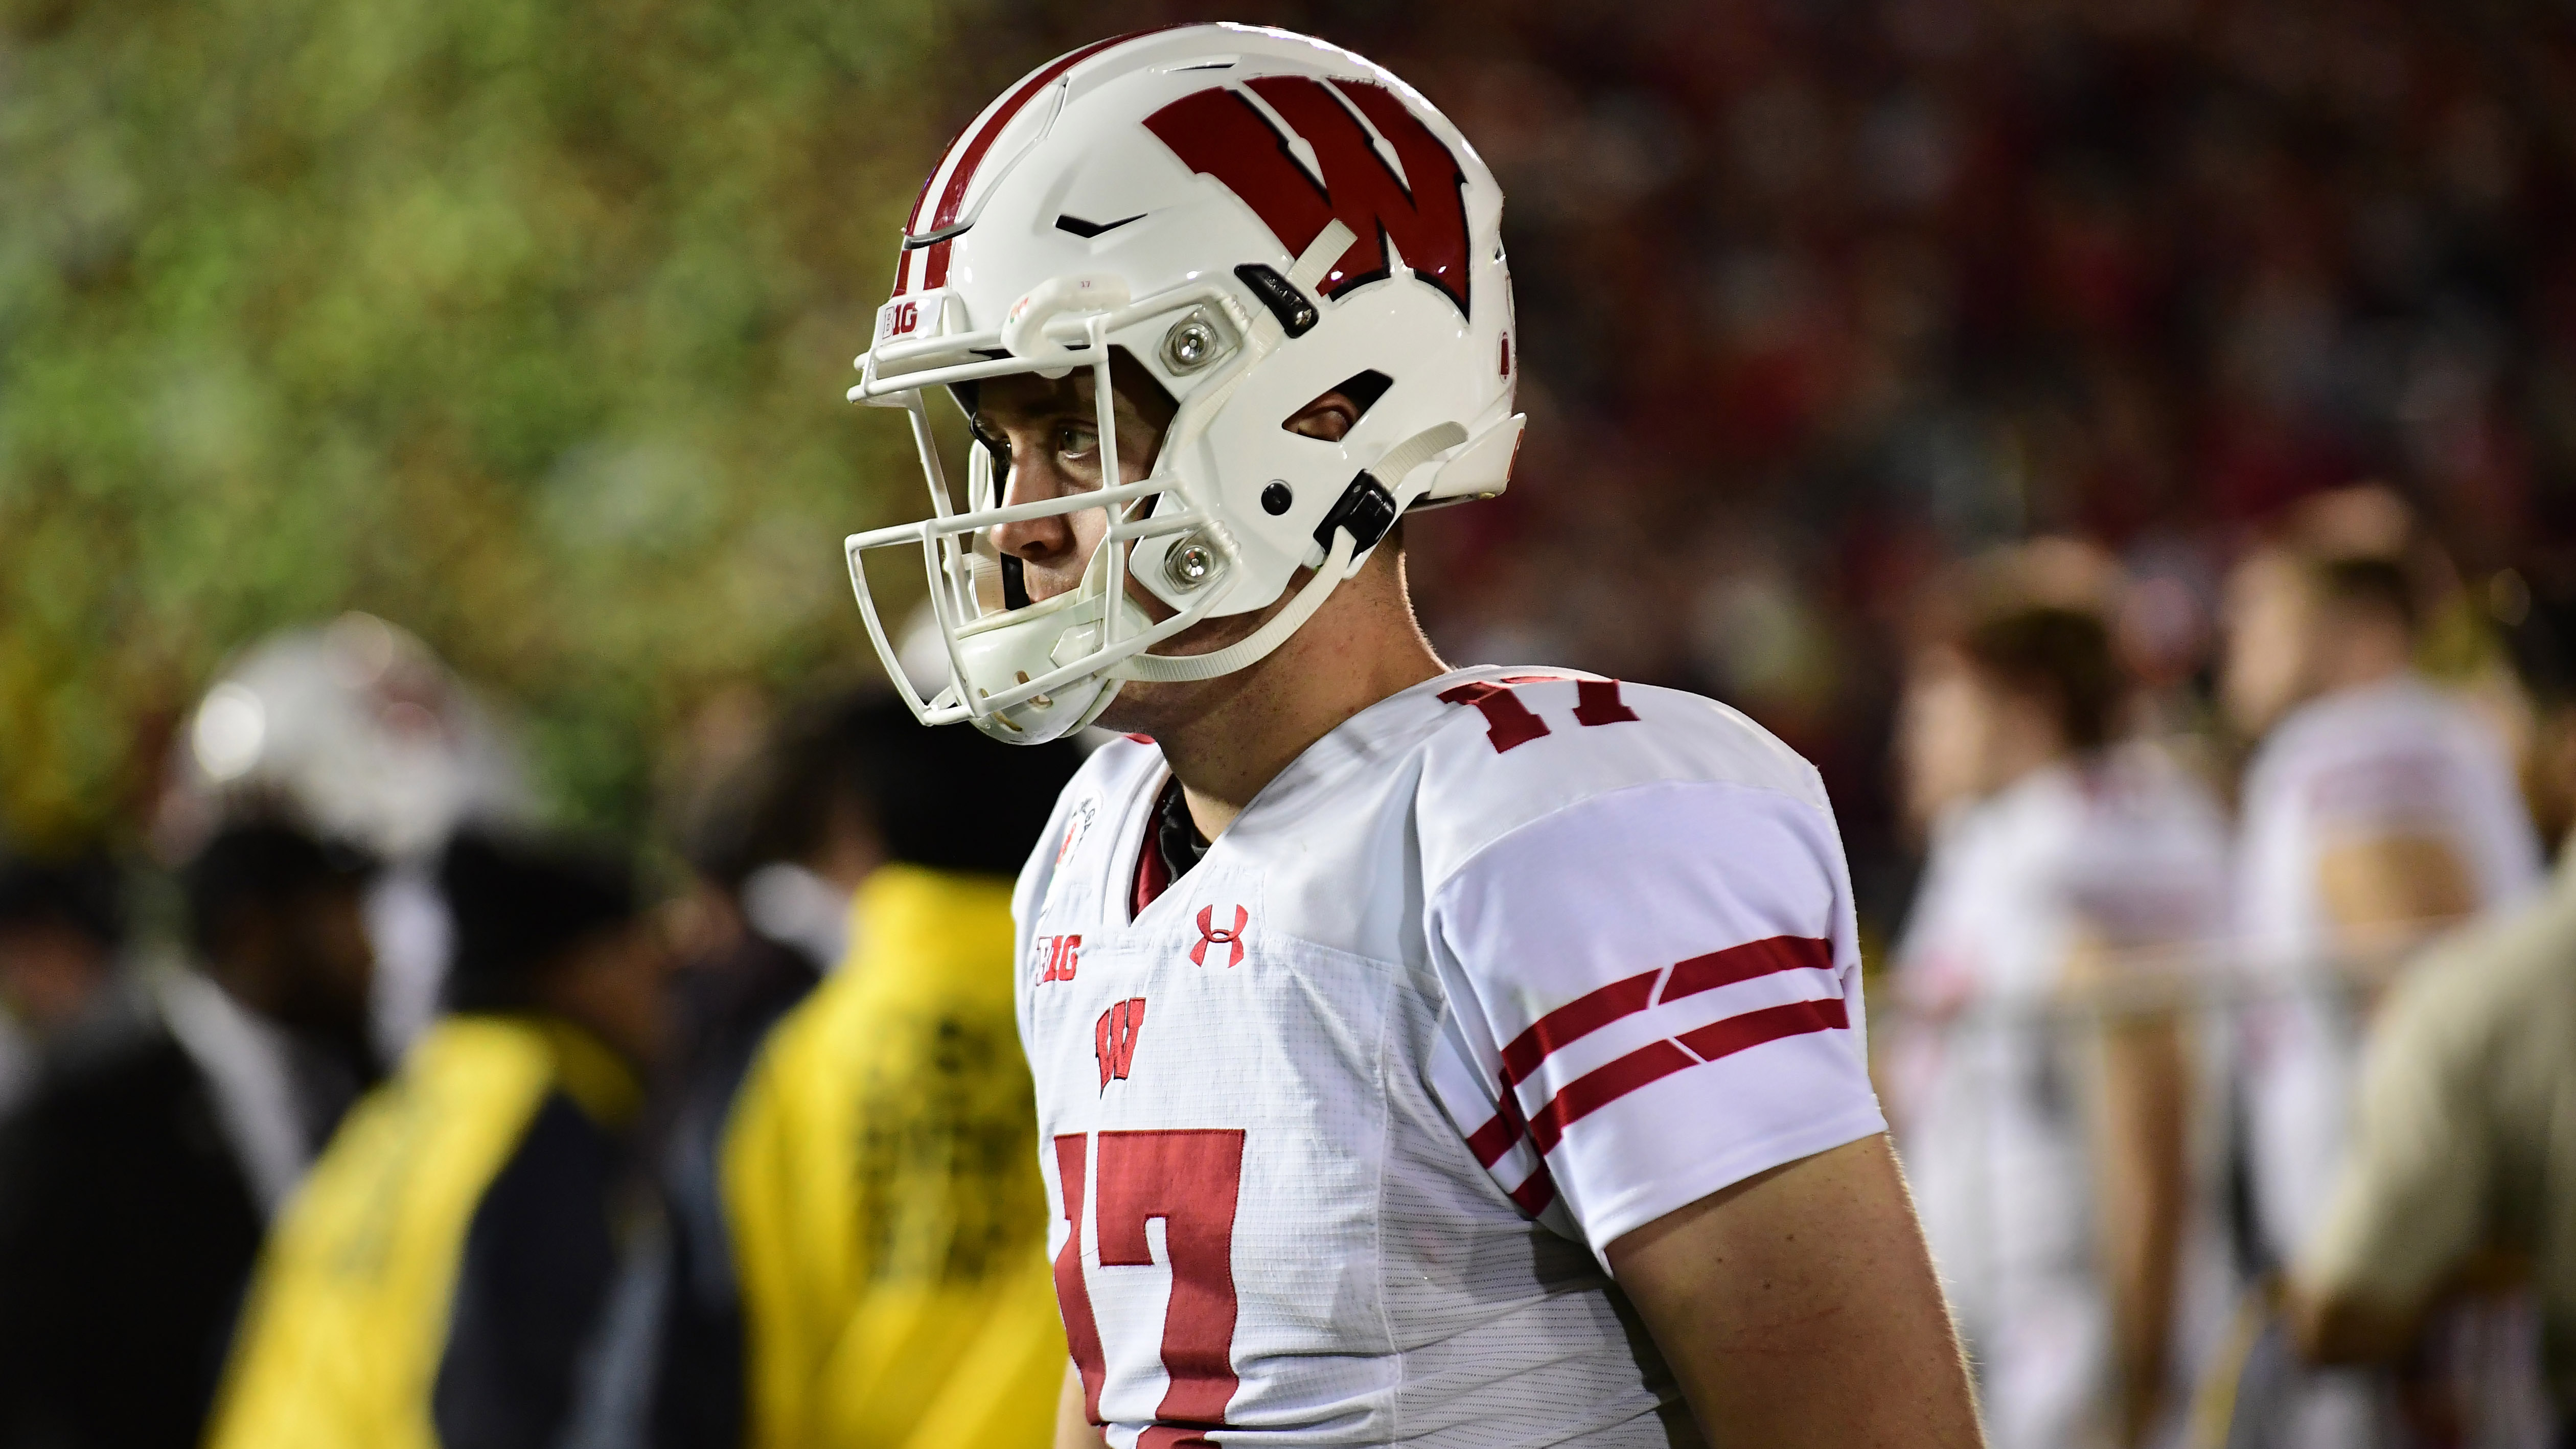 Wisconsin AD: 'We could have our team ready in 3 weeks'